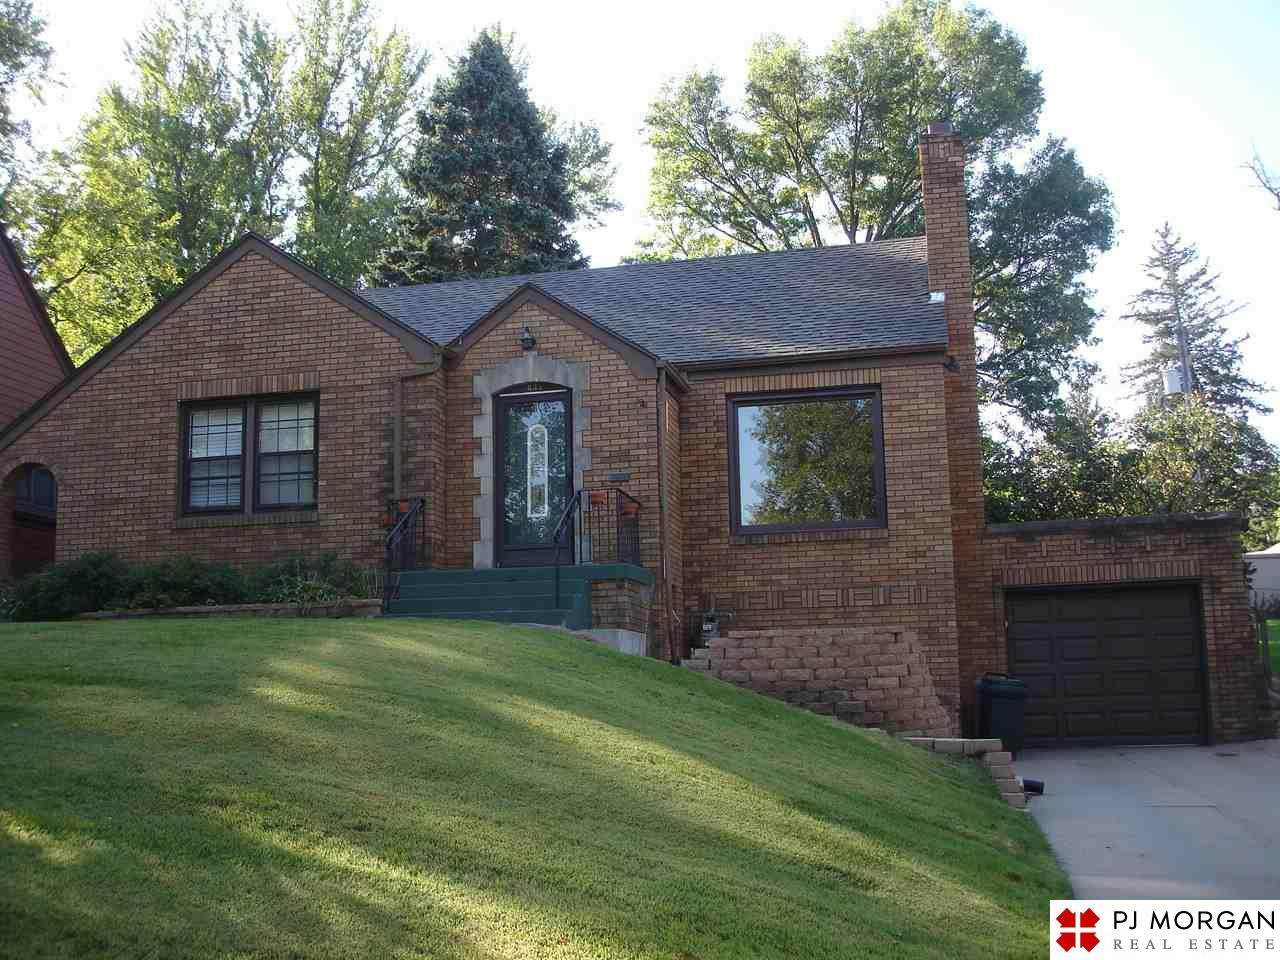 5835 Woolworth Ave - Photo 1